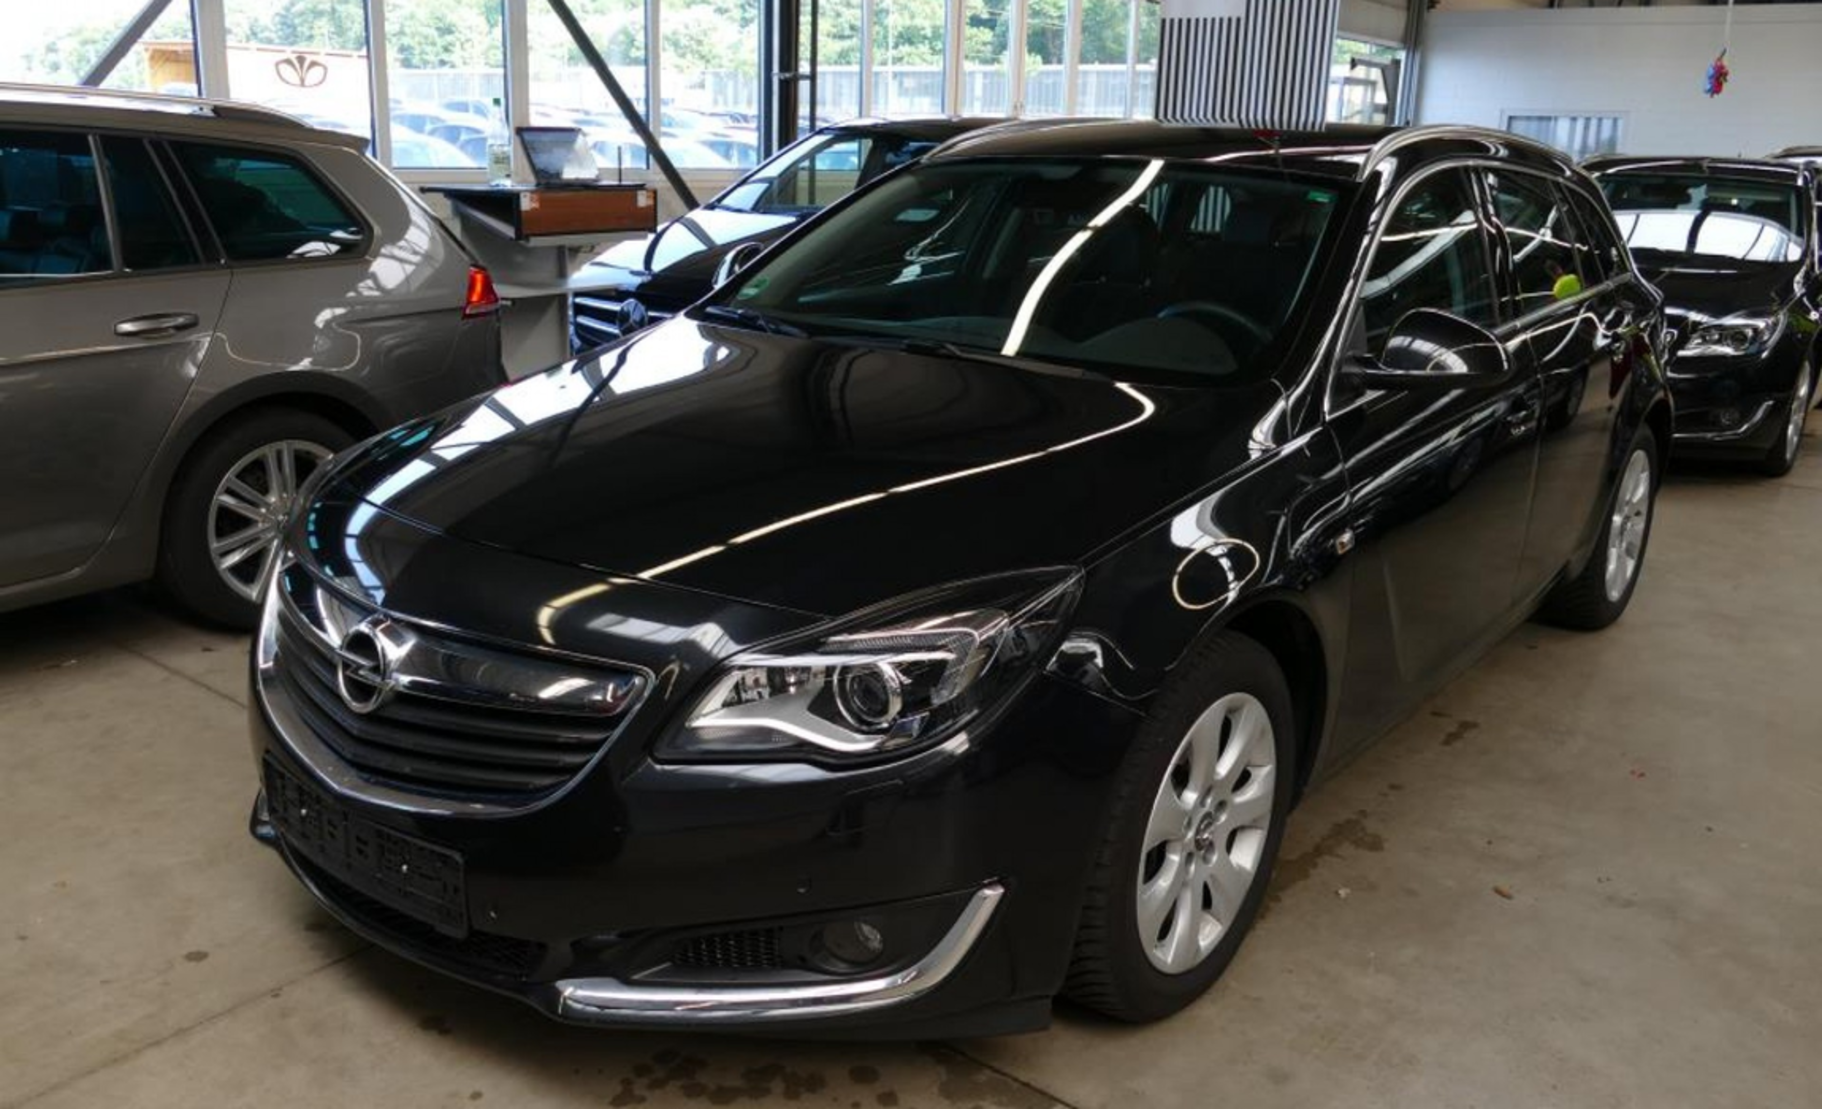 Opel Insignia 1.6 CDTI Sports Tourer ecoFLEXStart/Stop, Innovation detail1